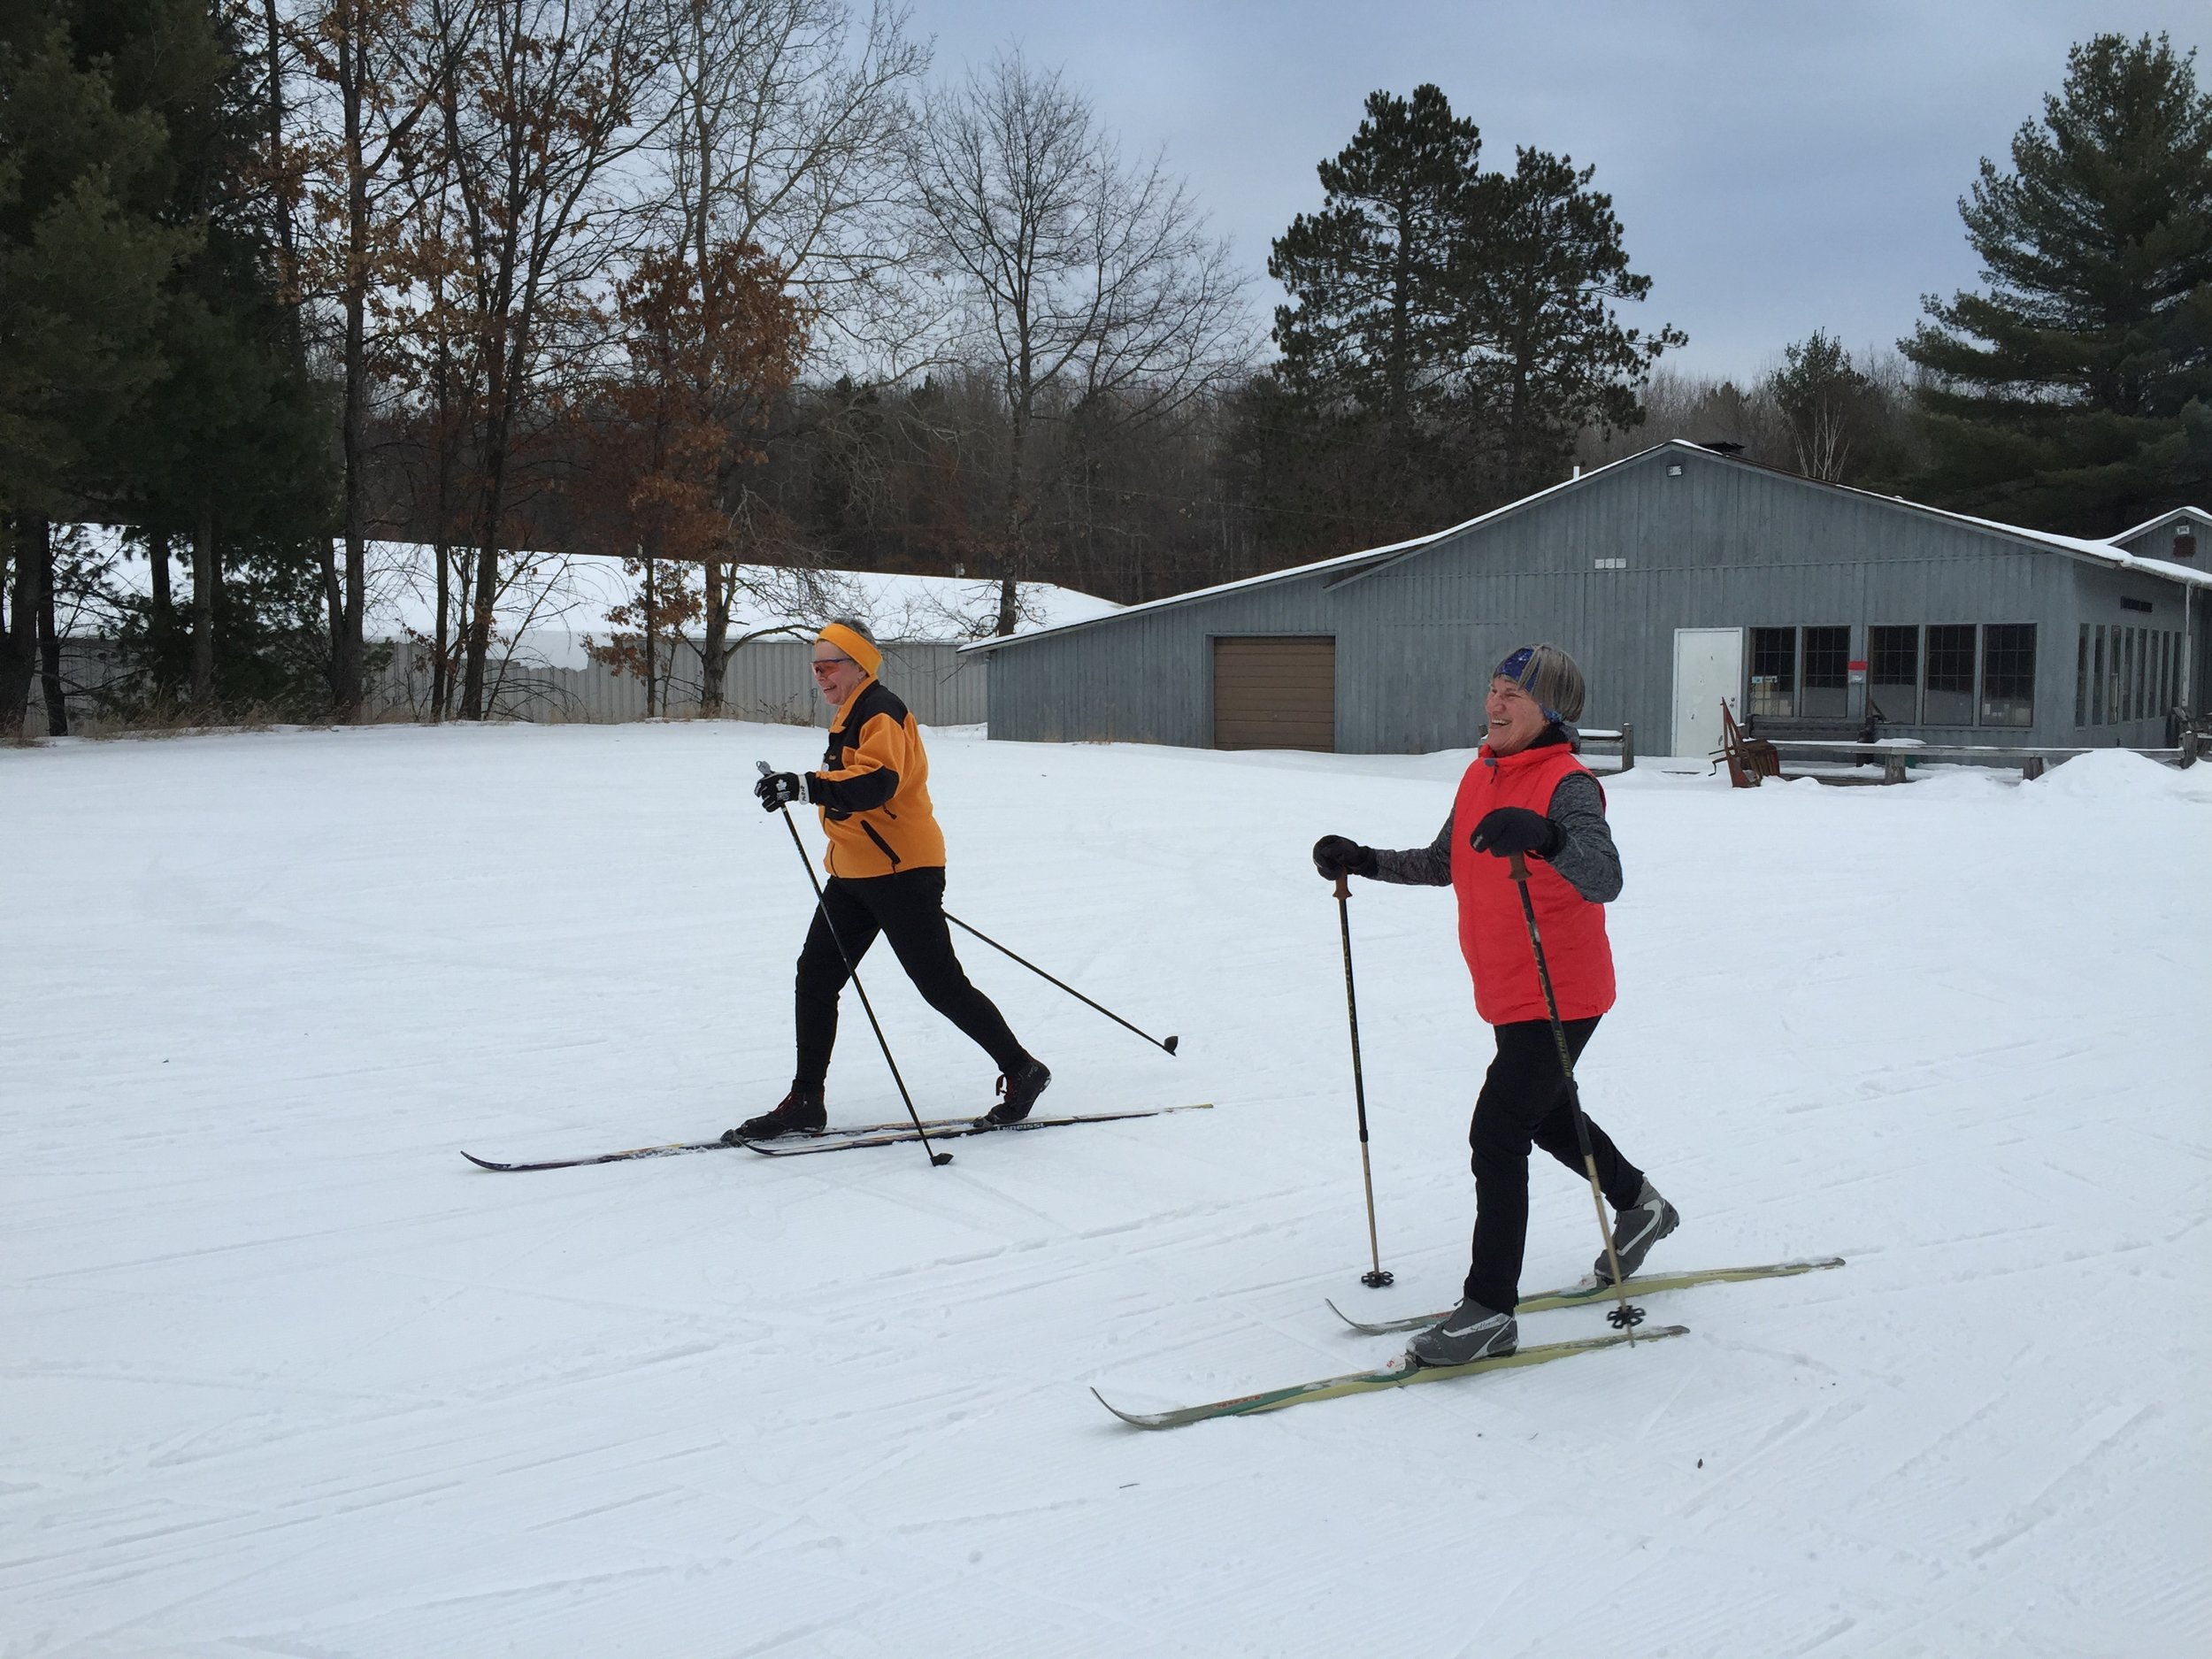 Two folks at Cross Country Ski Headquarters in Roscommon, MI